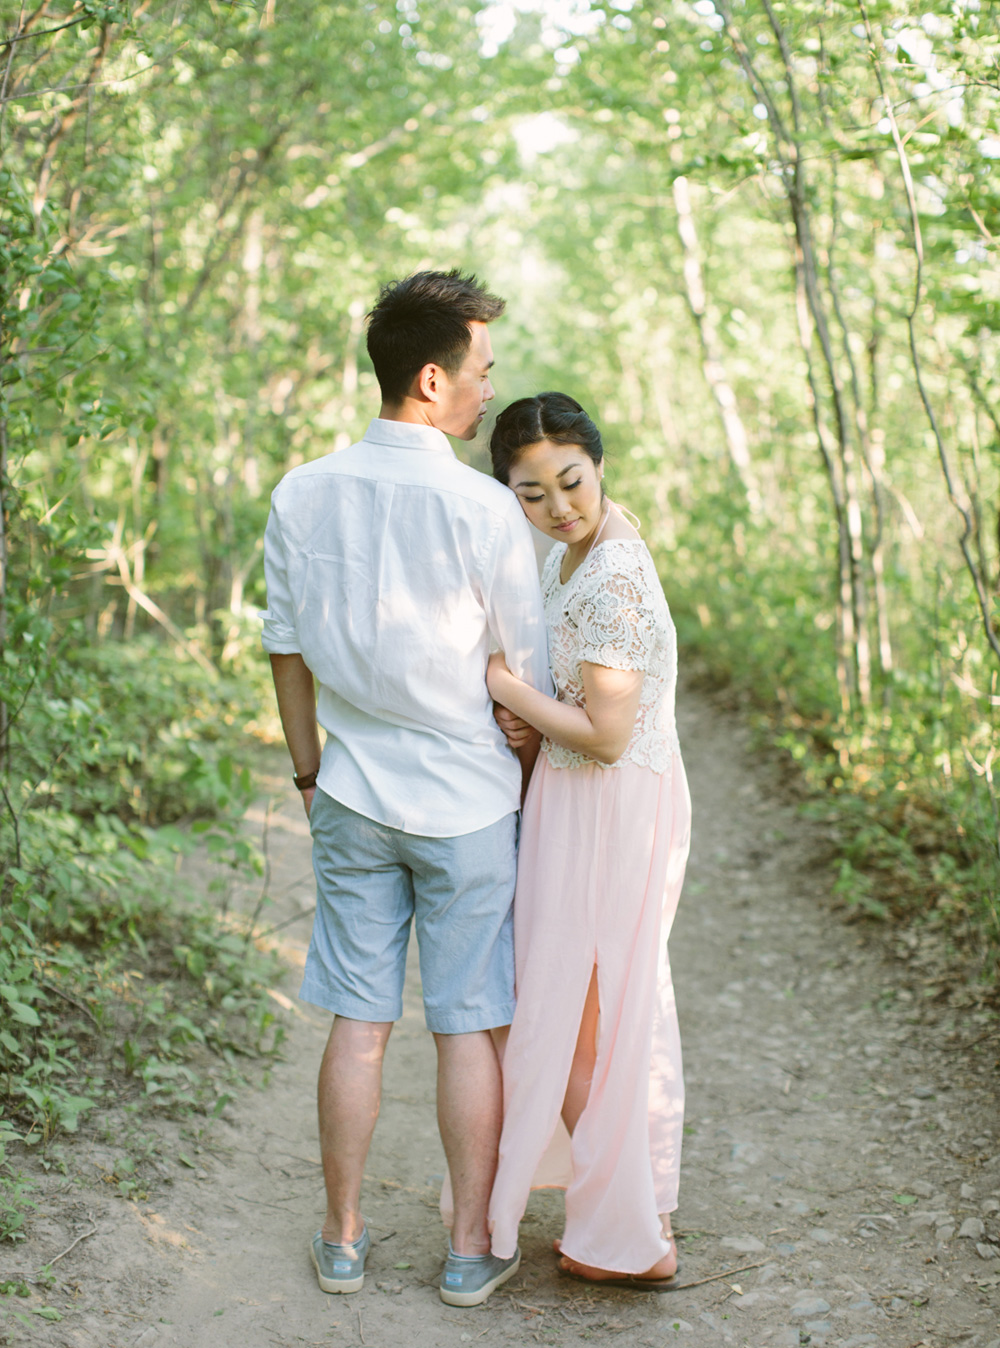 melissa-sung-photography-hamilton-coffeeshop-hike-adventure-engagement026.jpg